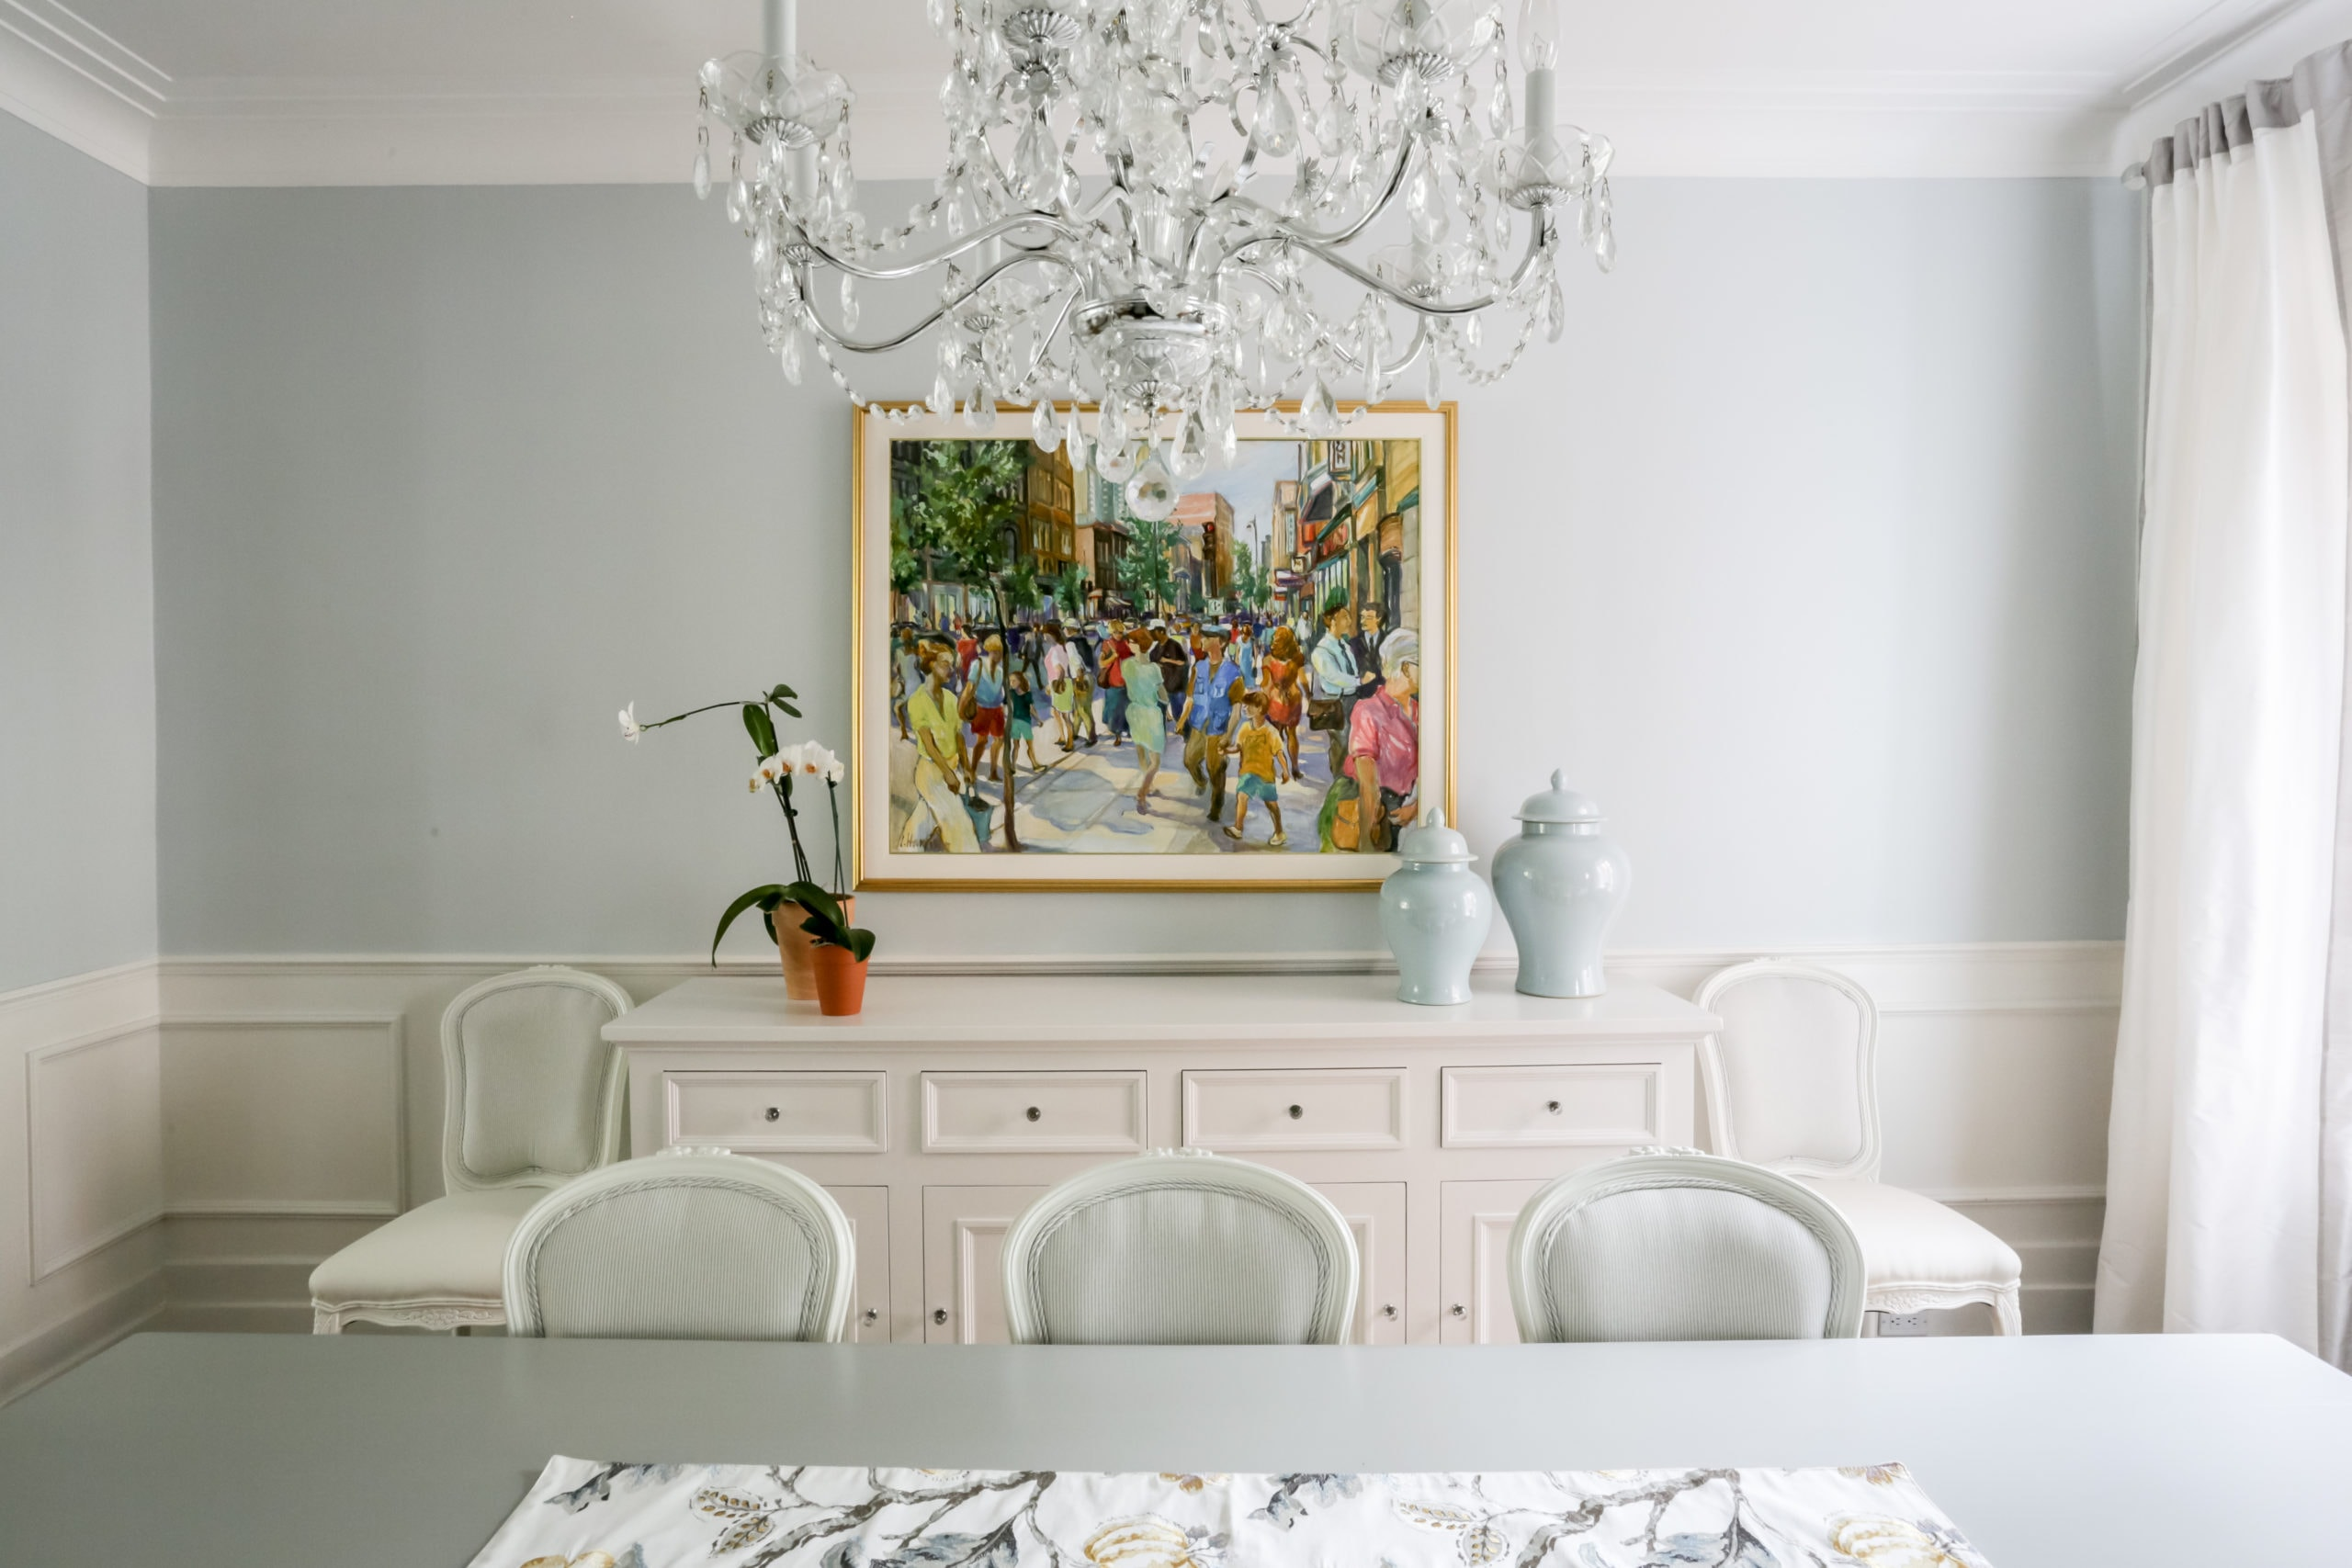 Bright dining room with a painting of a crowded street